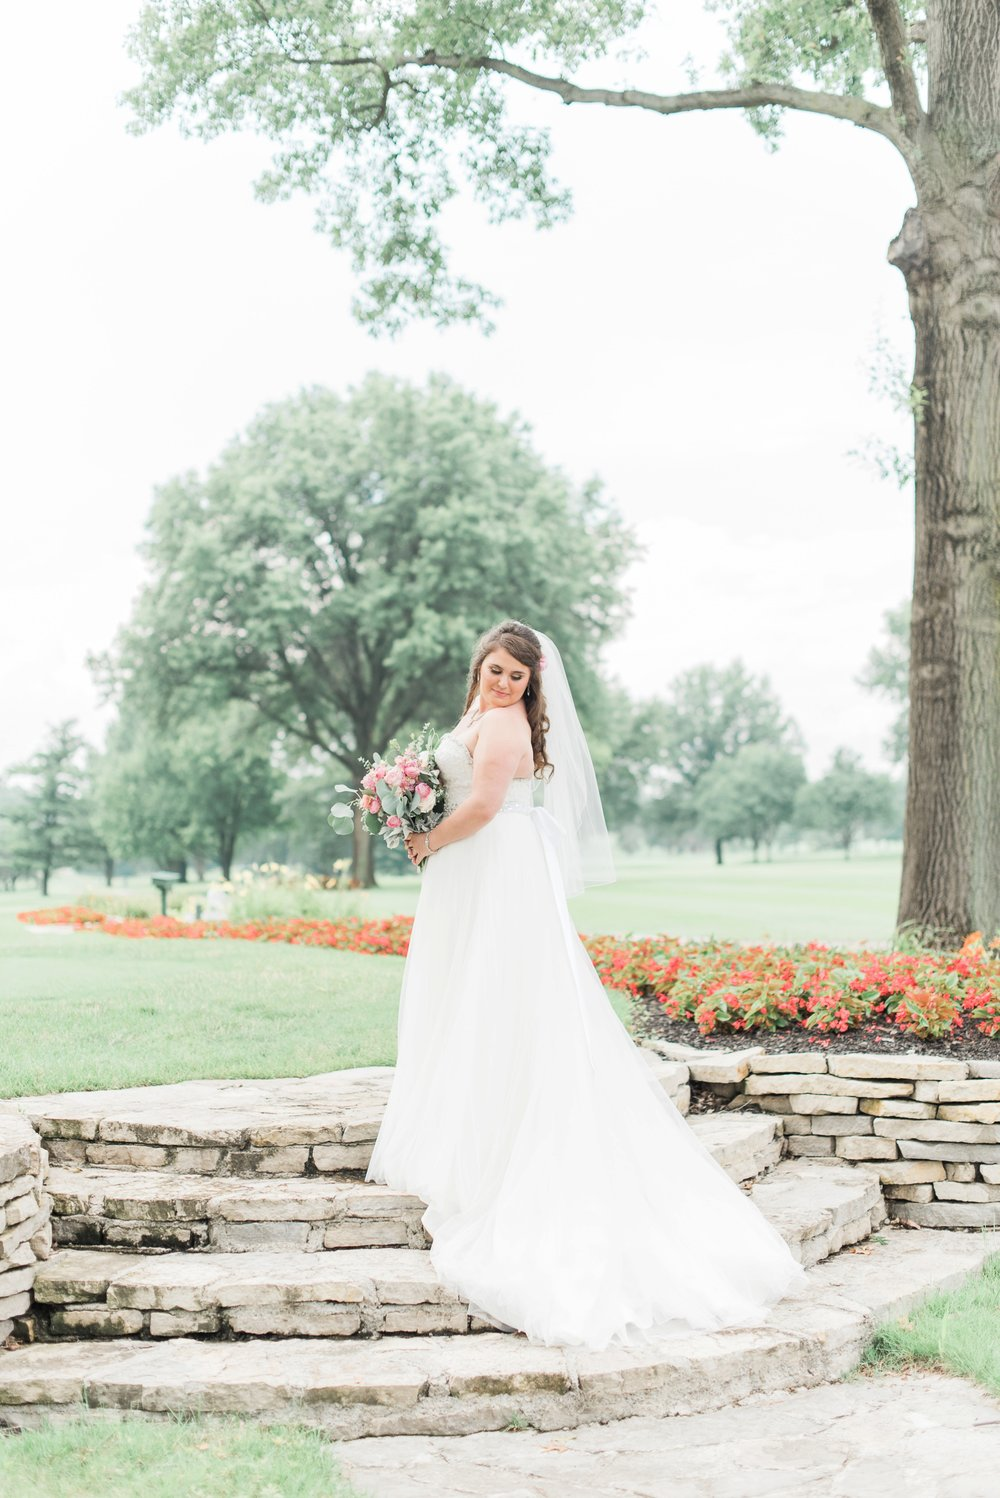 worthington-hills-country-club-wedding-columbus-ohio-meg-evan_0133.jpg